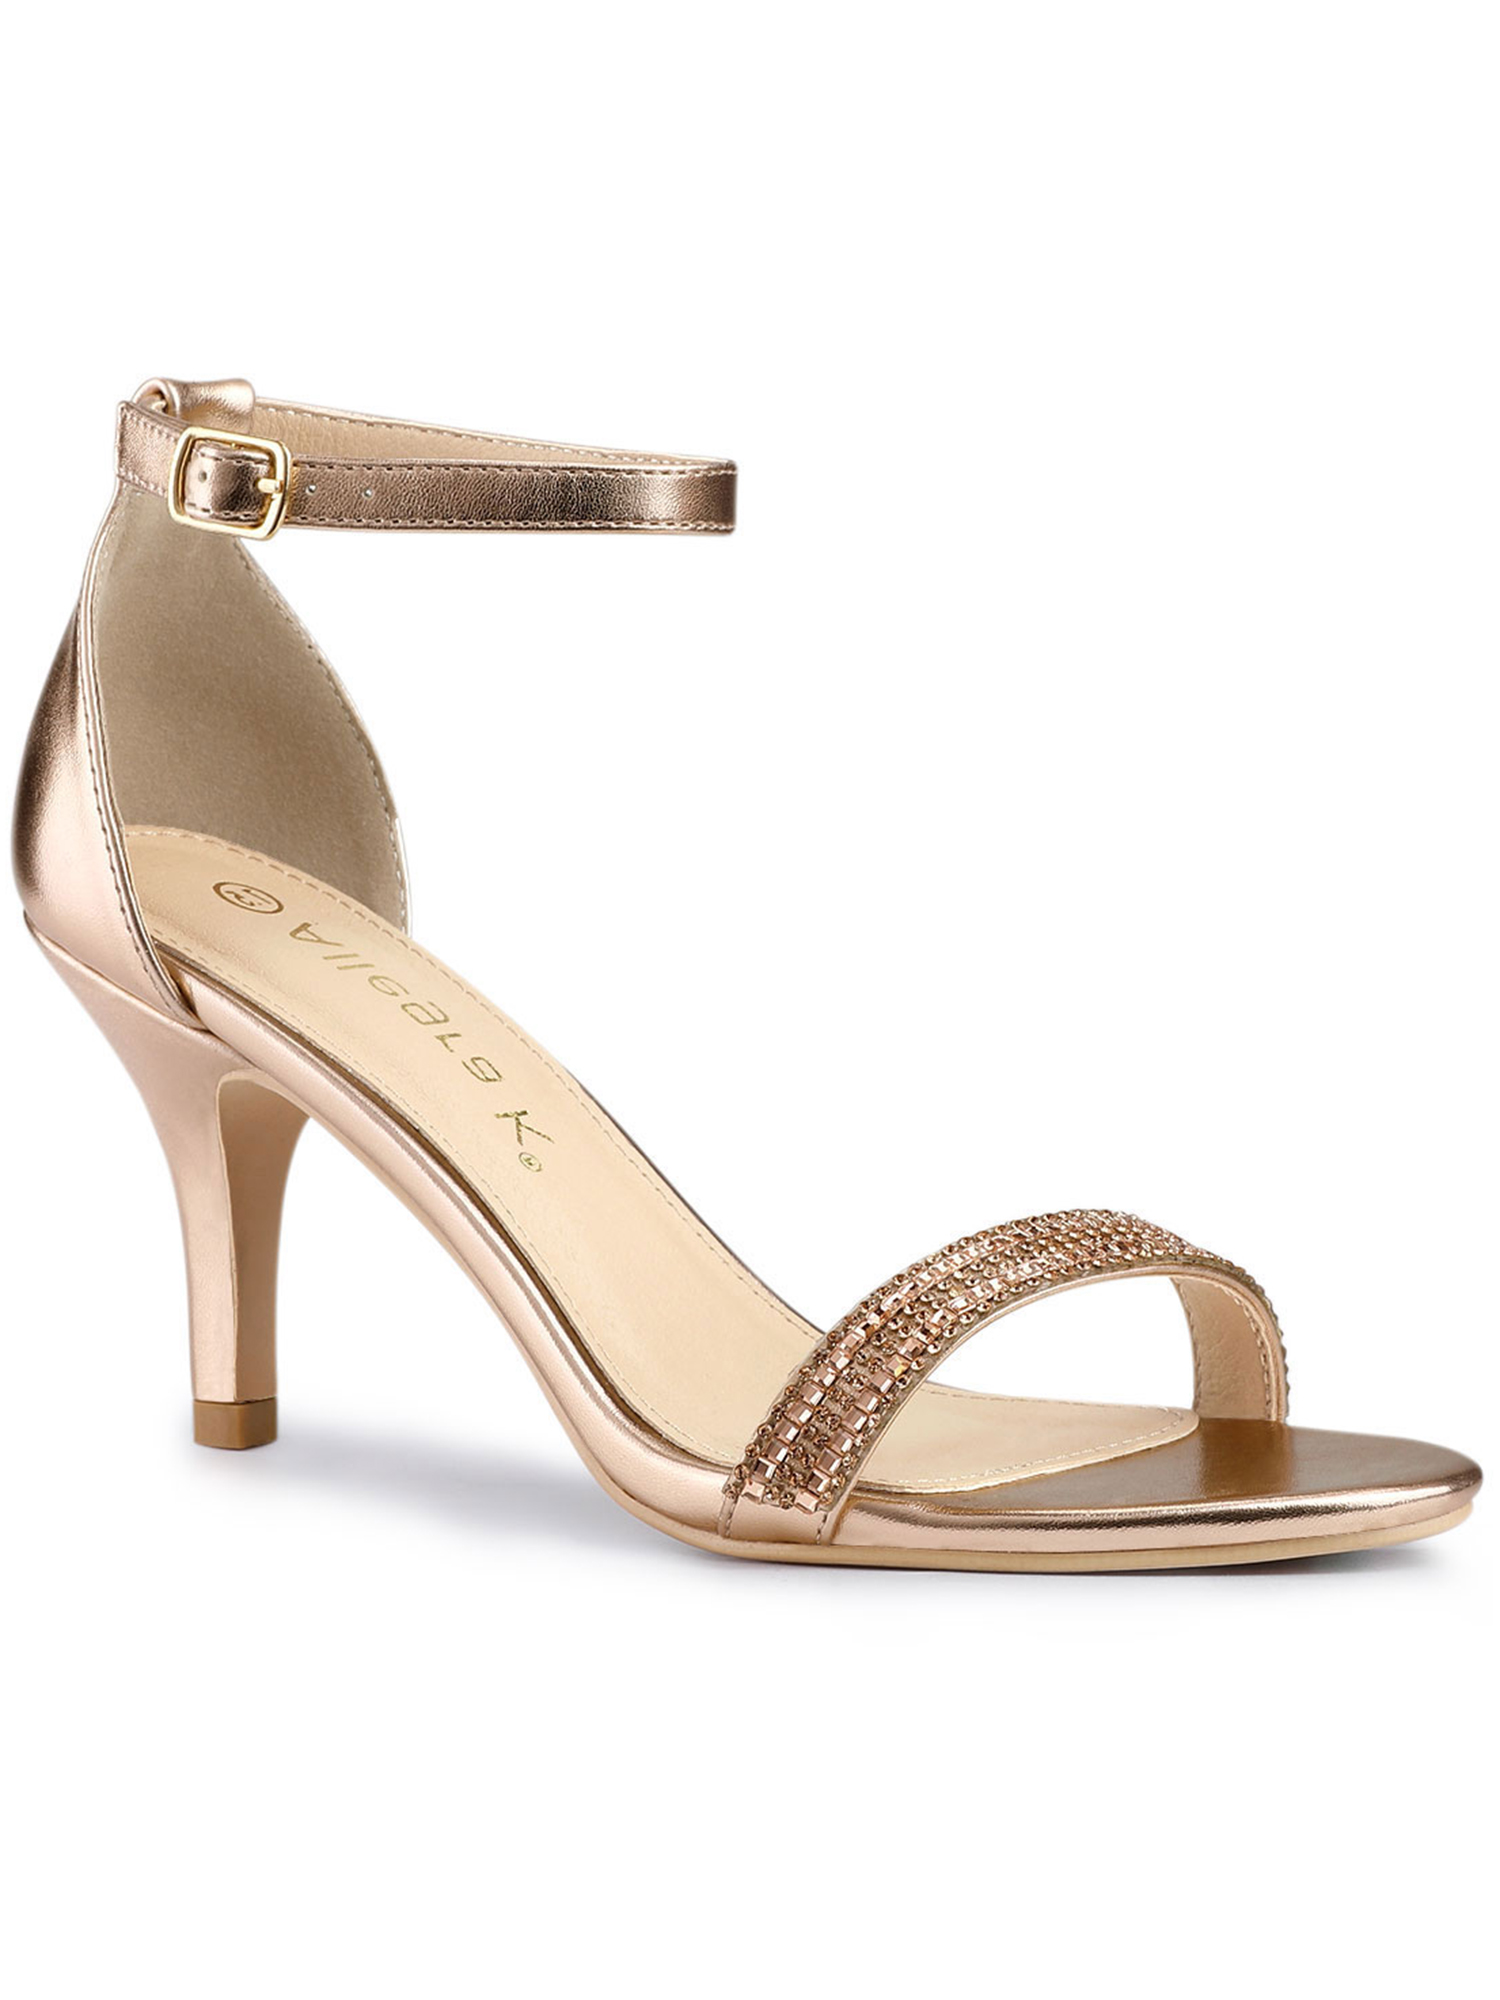 Details about  /Womens Fashion Pointy Toe Cross Ankle Strap Dress Shoes Elegant Kitten Mid Heels